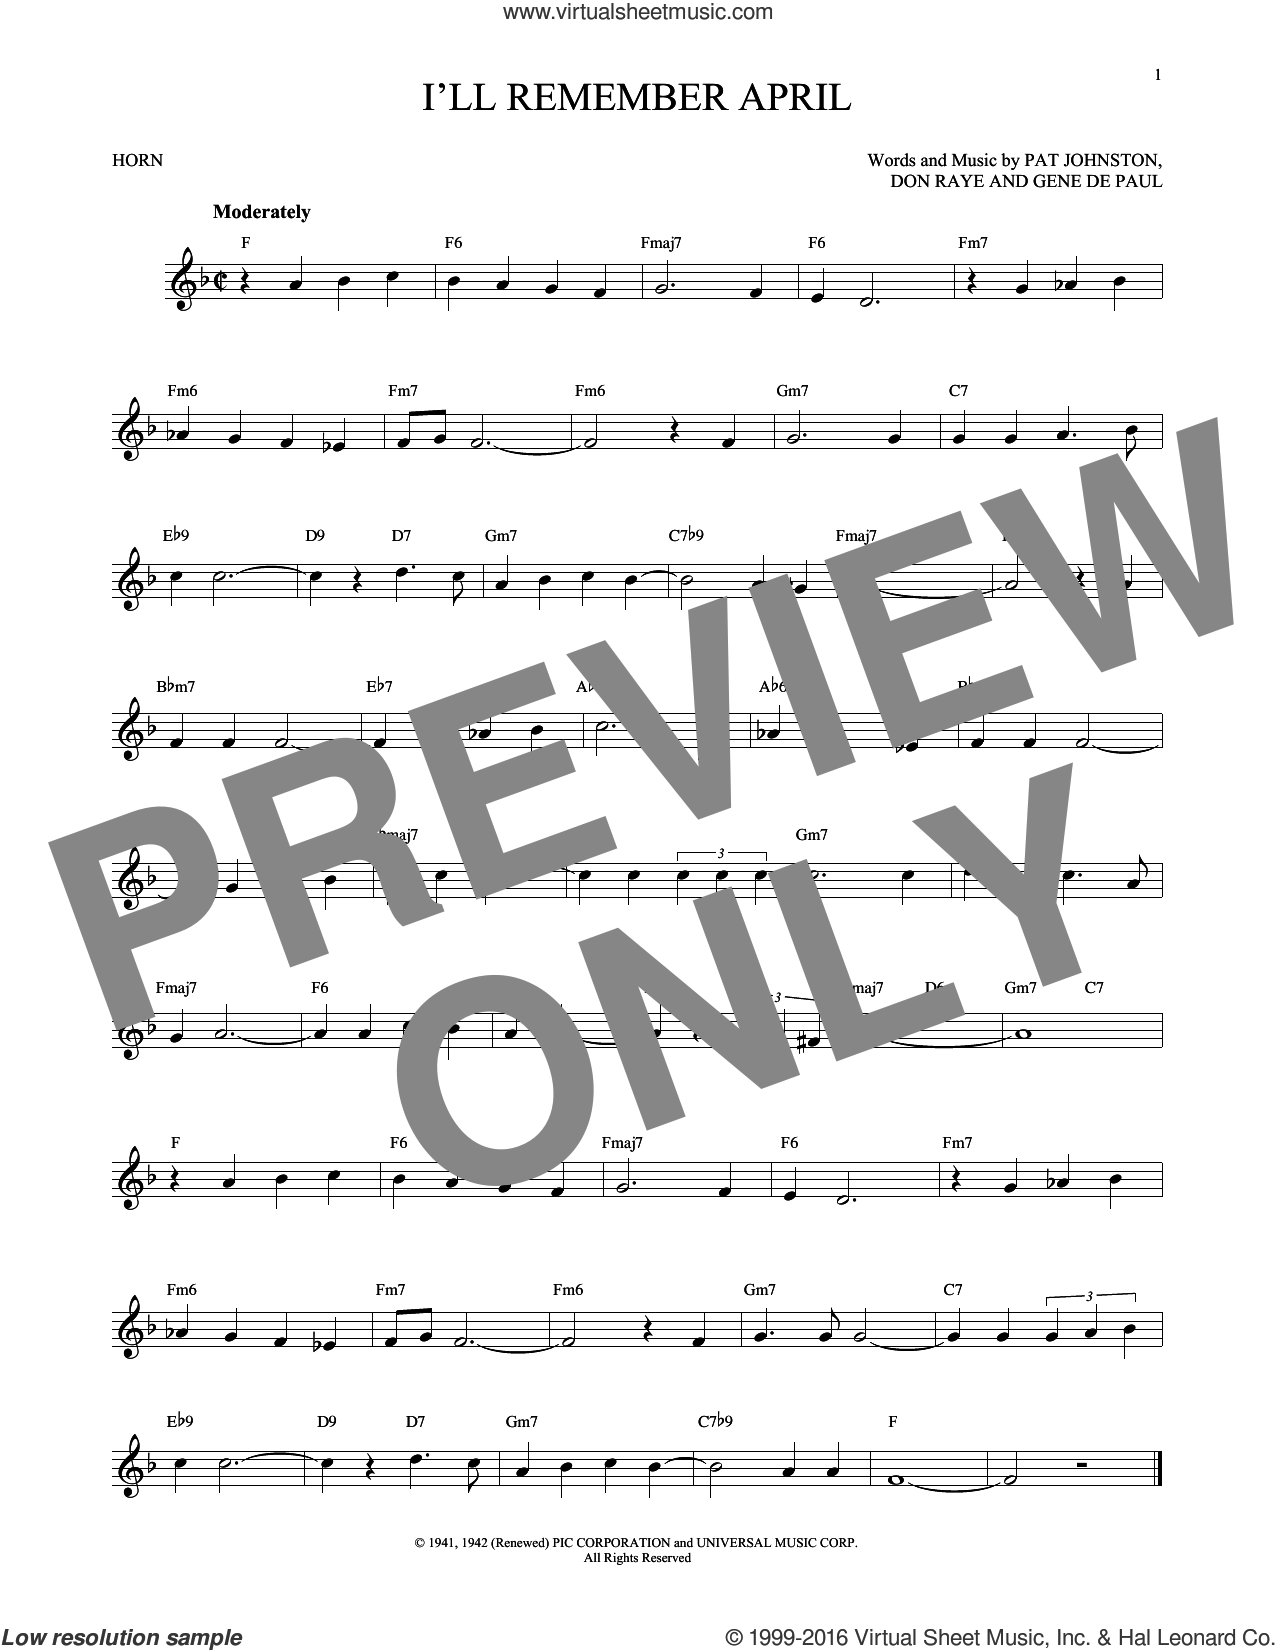 I'll Remember April sheet music for horn solo by Woody Herman & His Orchestra, Don Raye, Gene DePaul and Pat Johnston, intermediate skill level